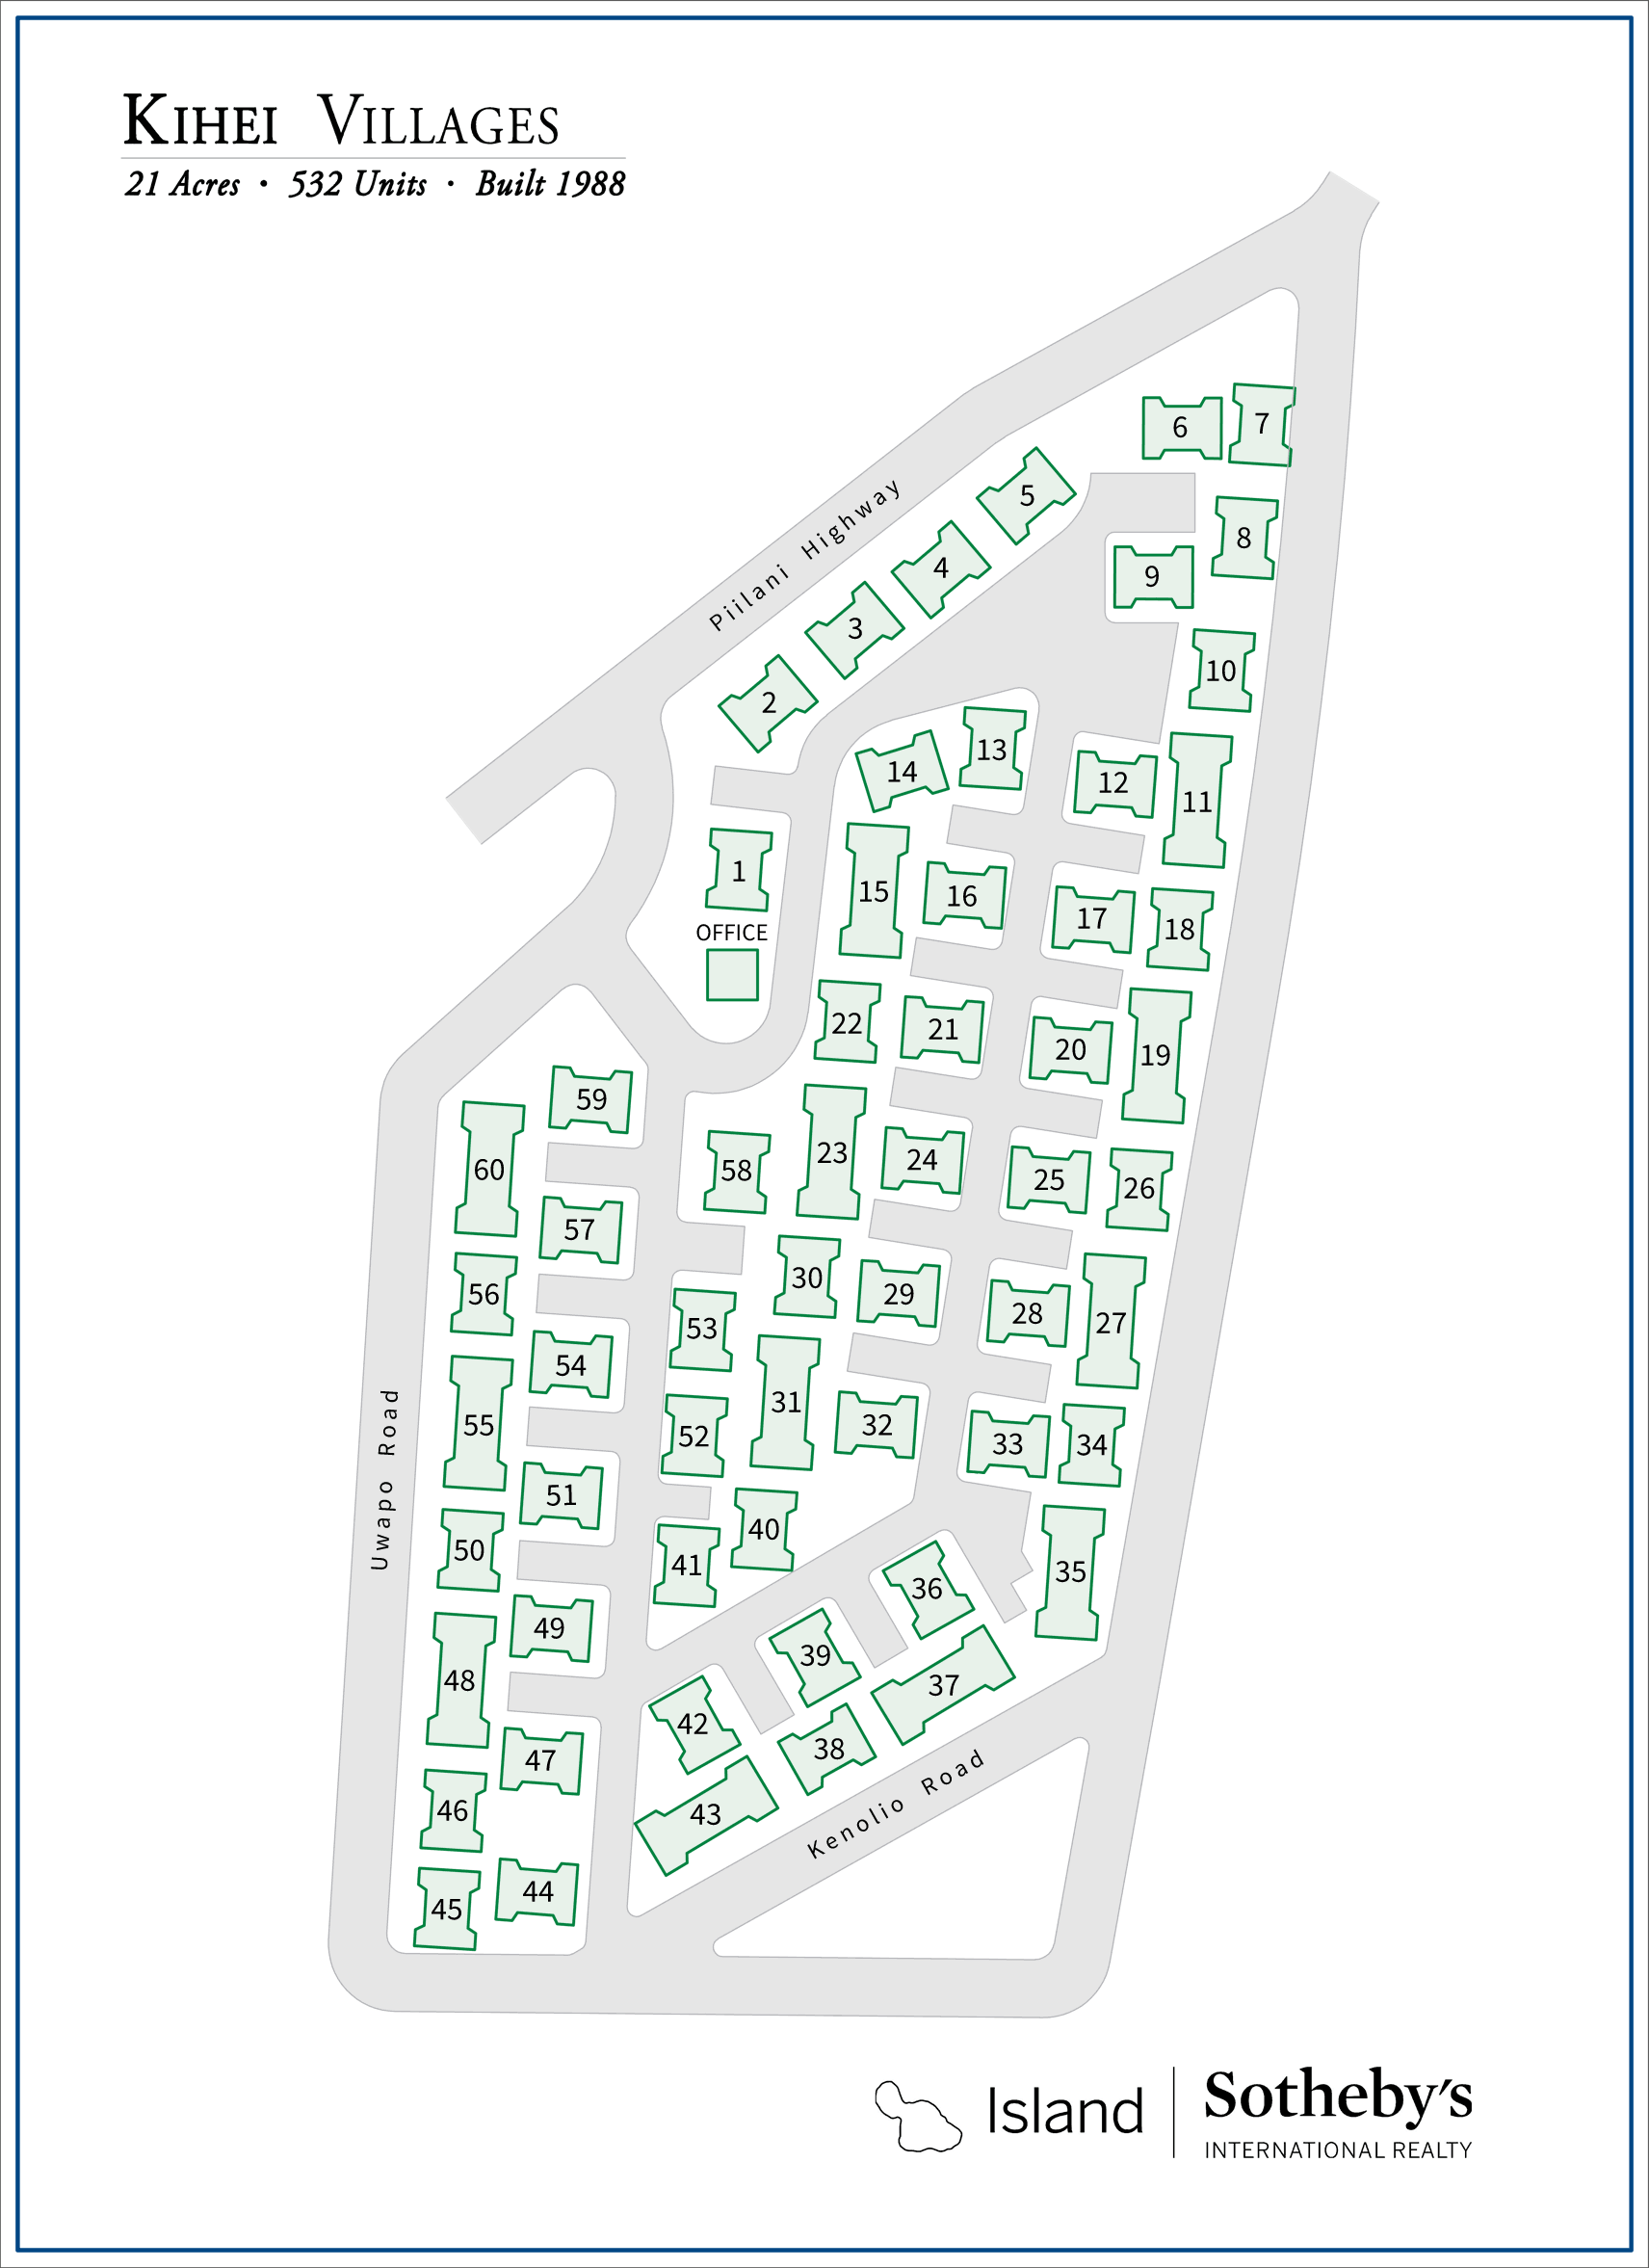 kihei villages condo map